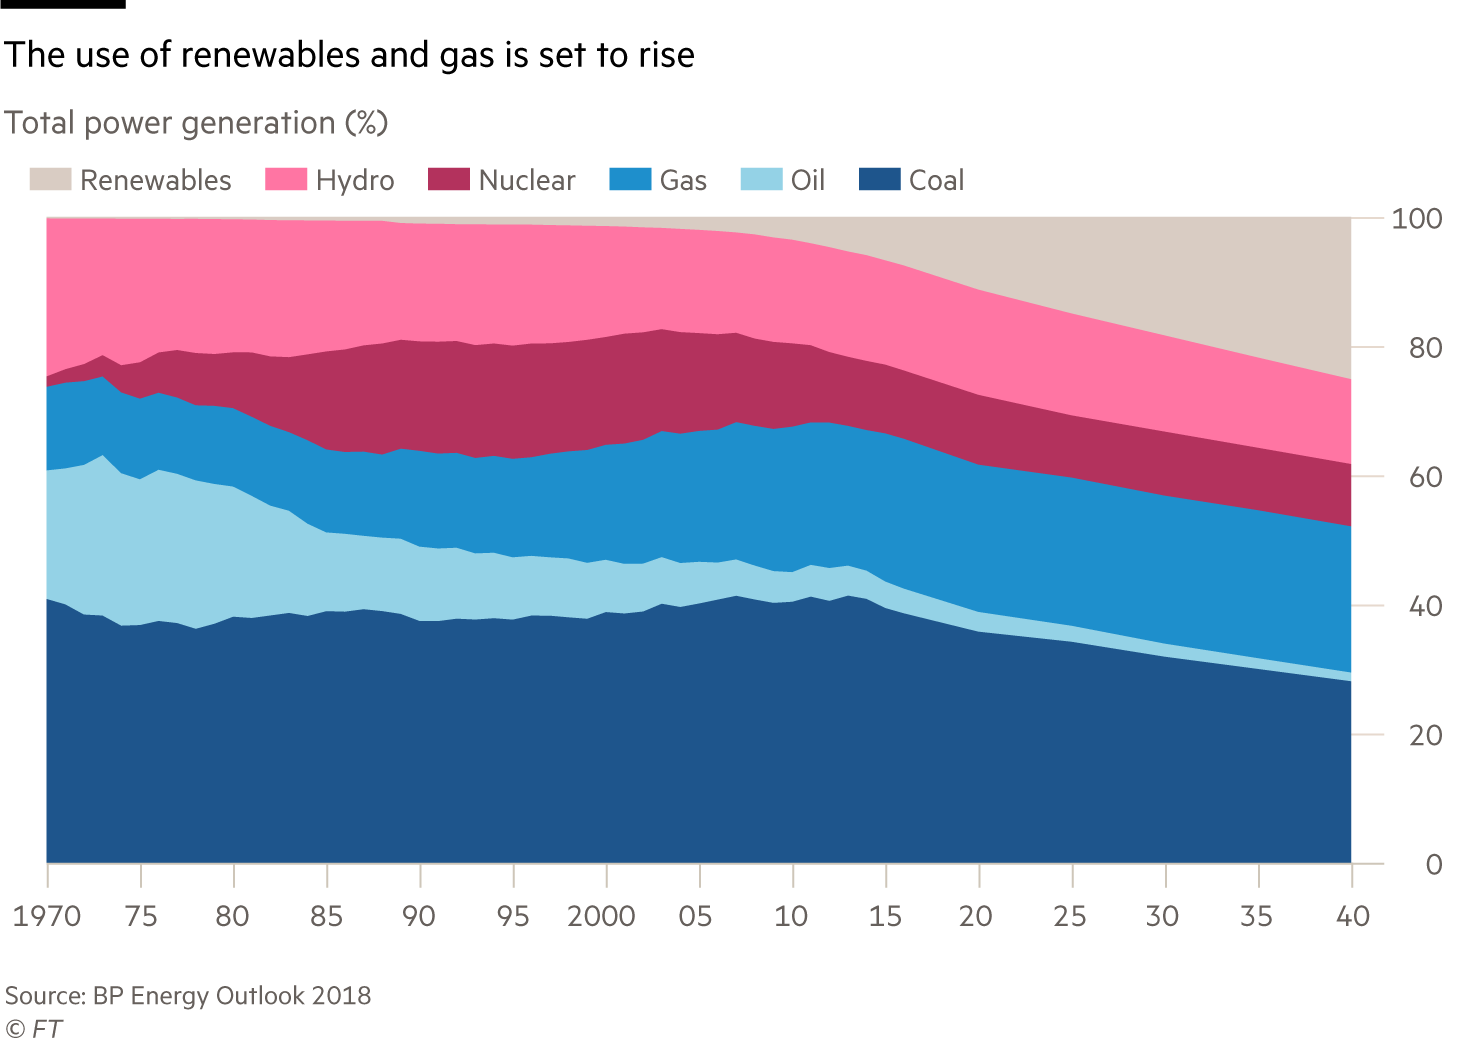 Oil utilities chart: The use of renewables and gas is set to rise